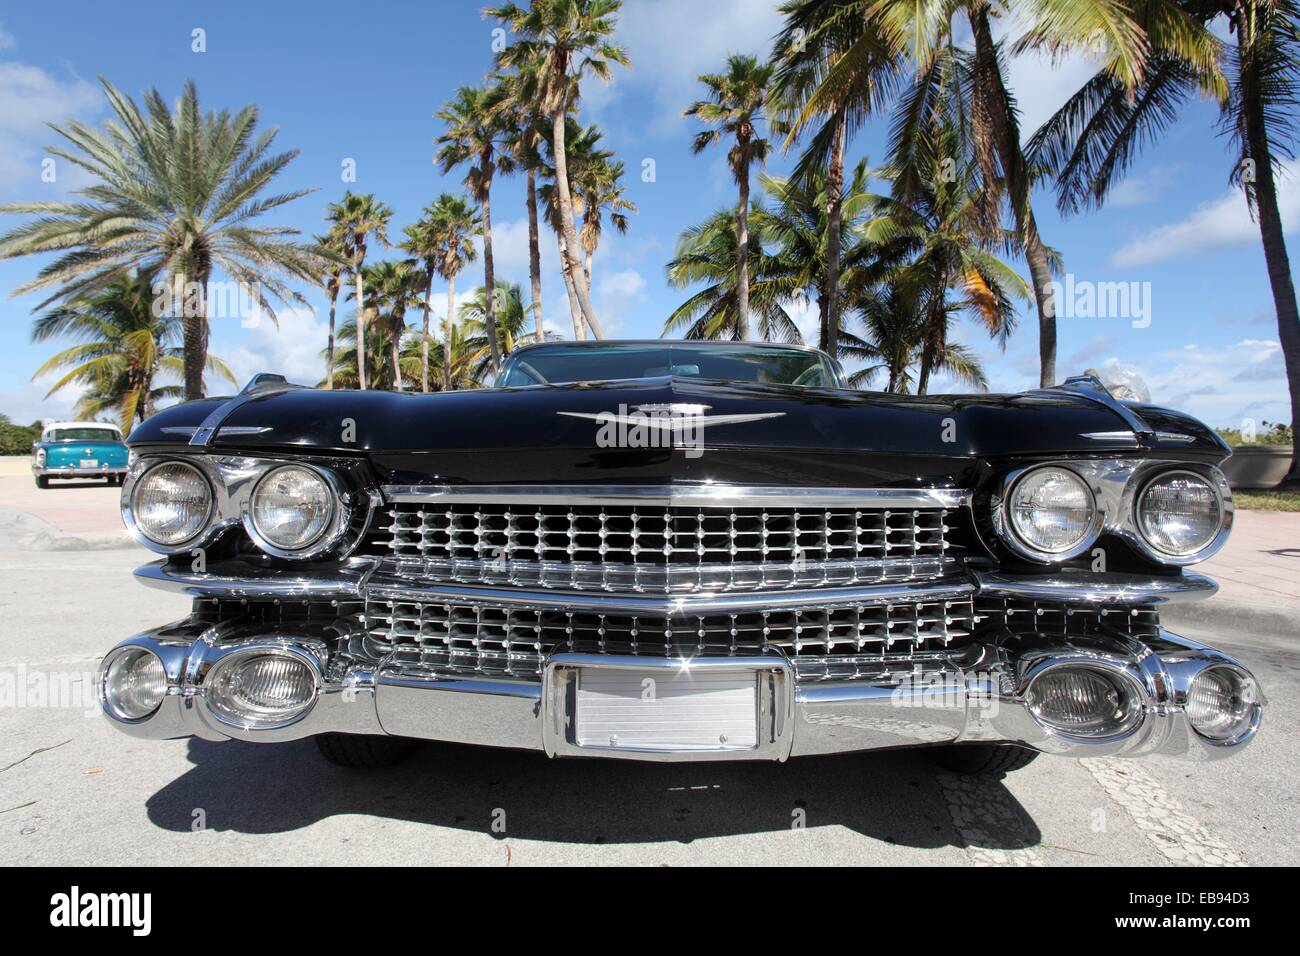 Exhibition of old cars in Miami Beach, Florida, USA Stock Photo ...